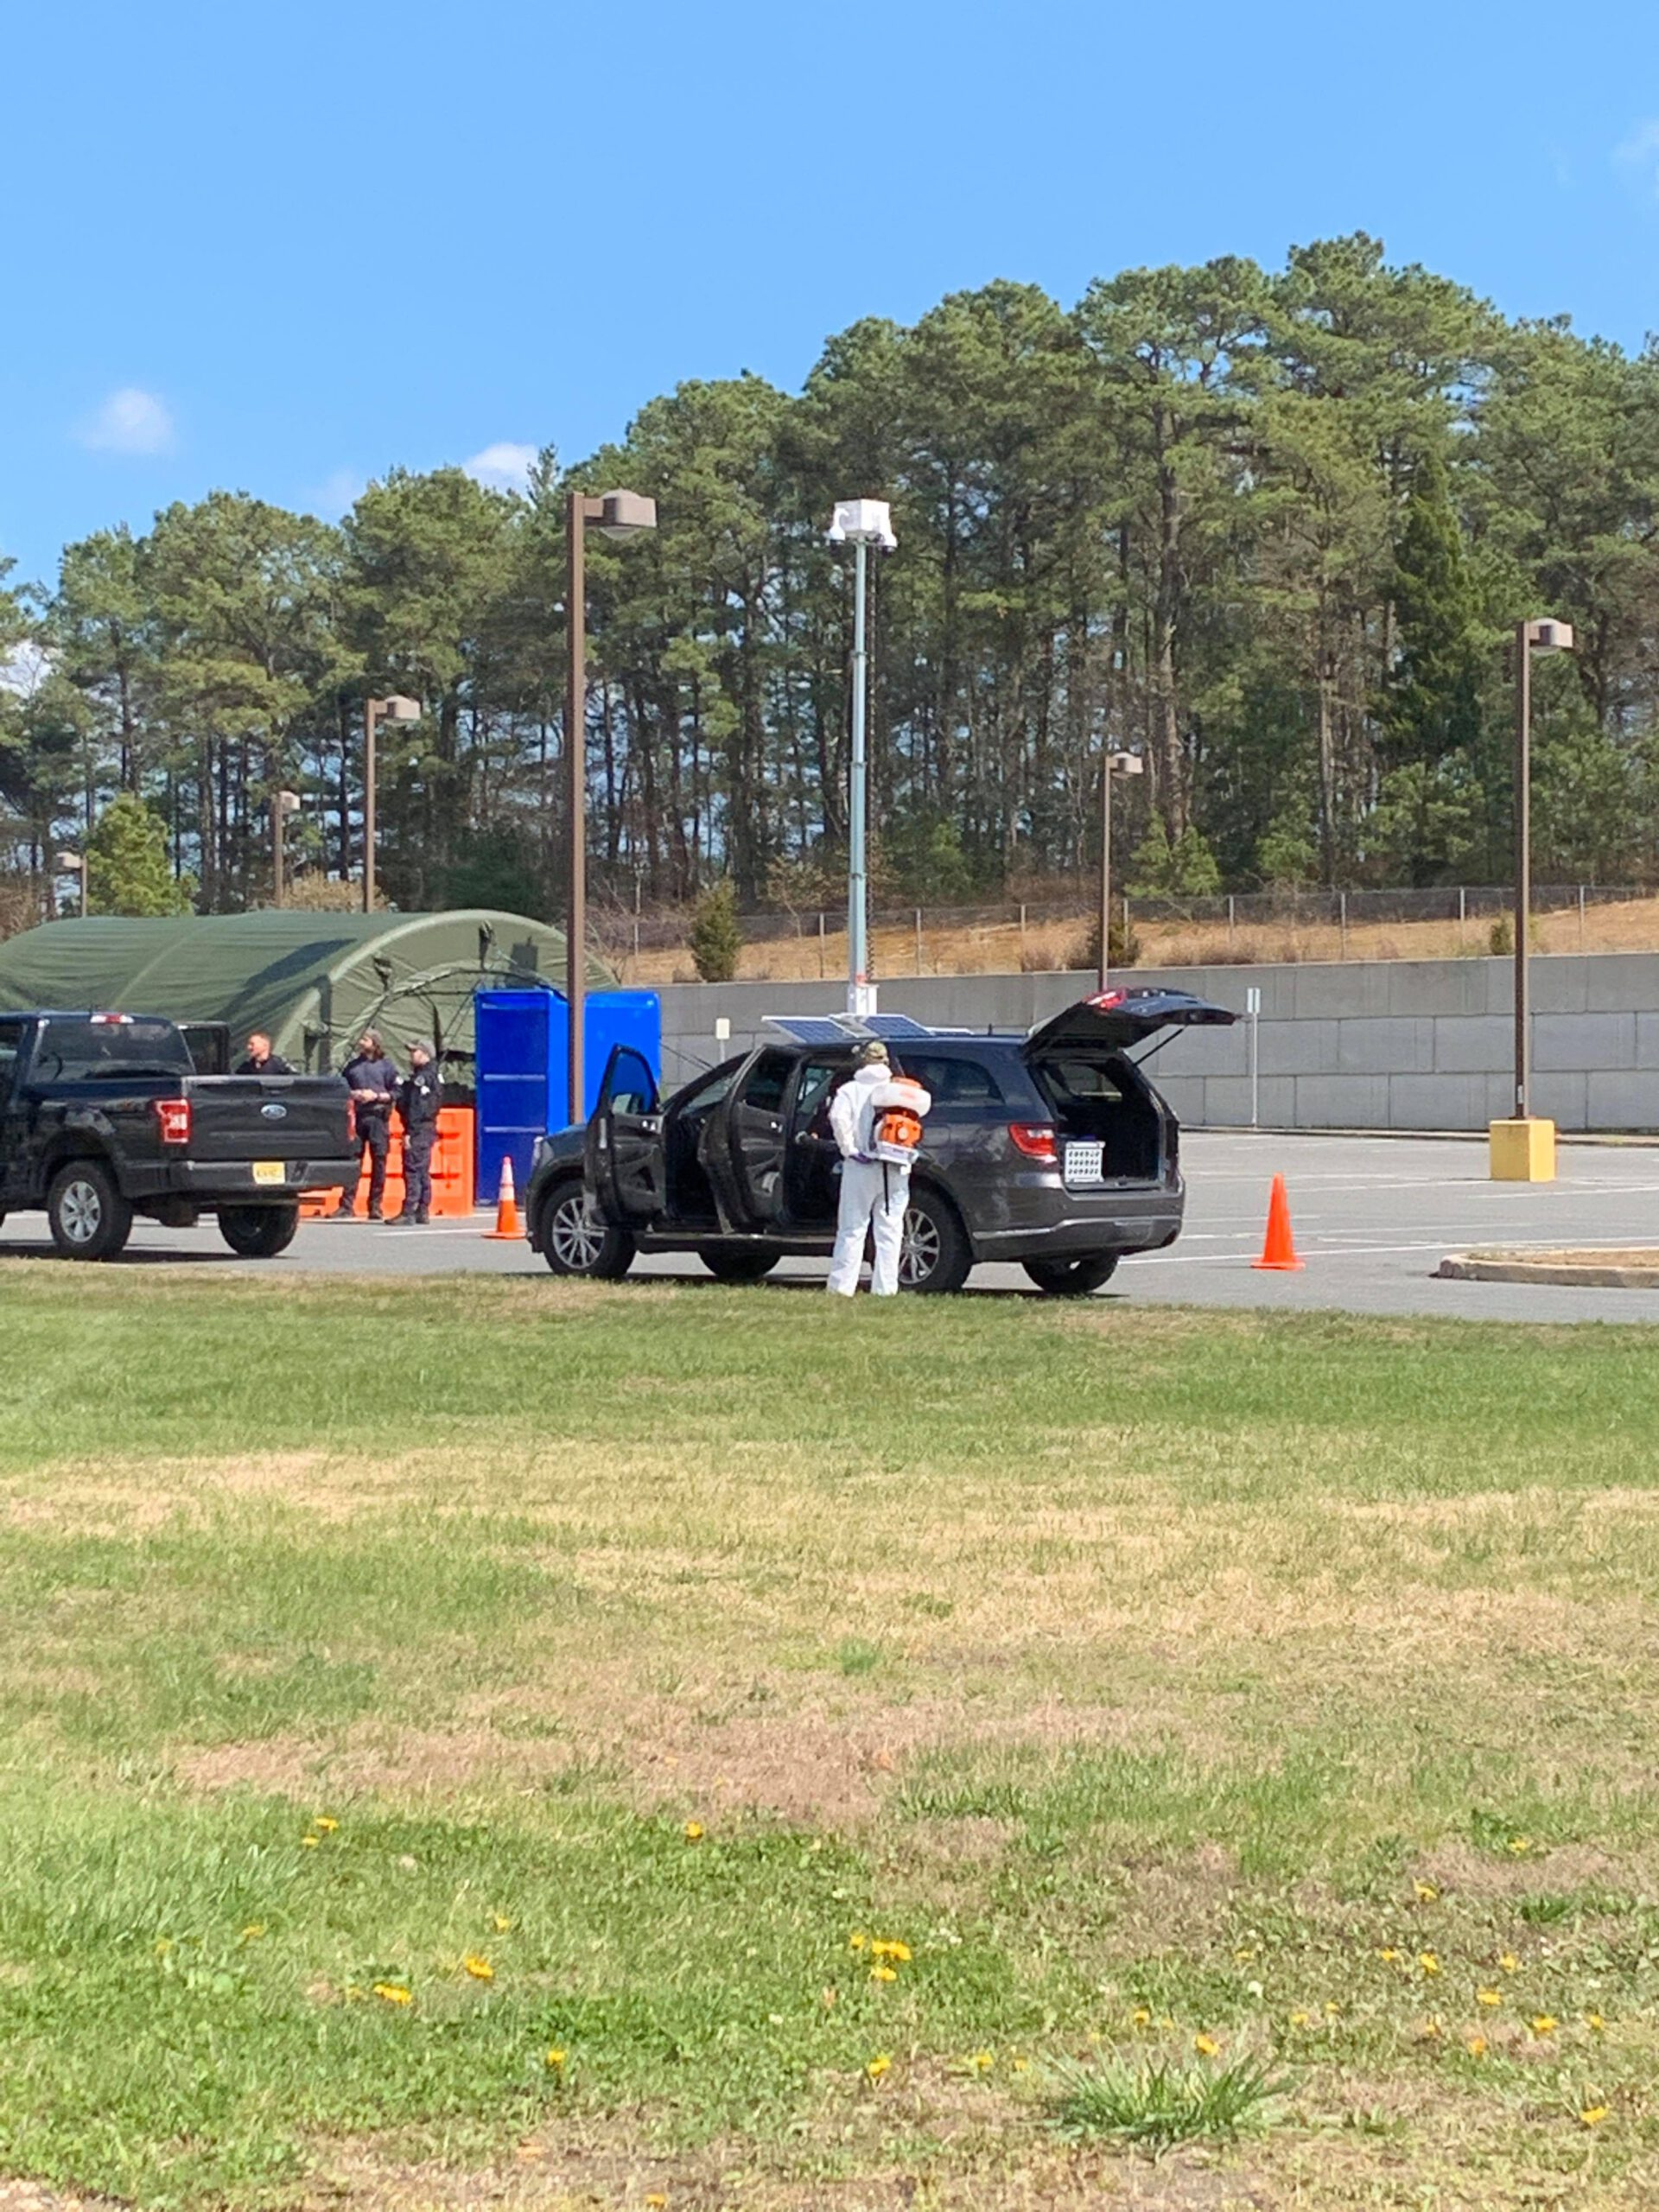 BERKELEY: County Continues to Decon Emergency Vehicles